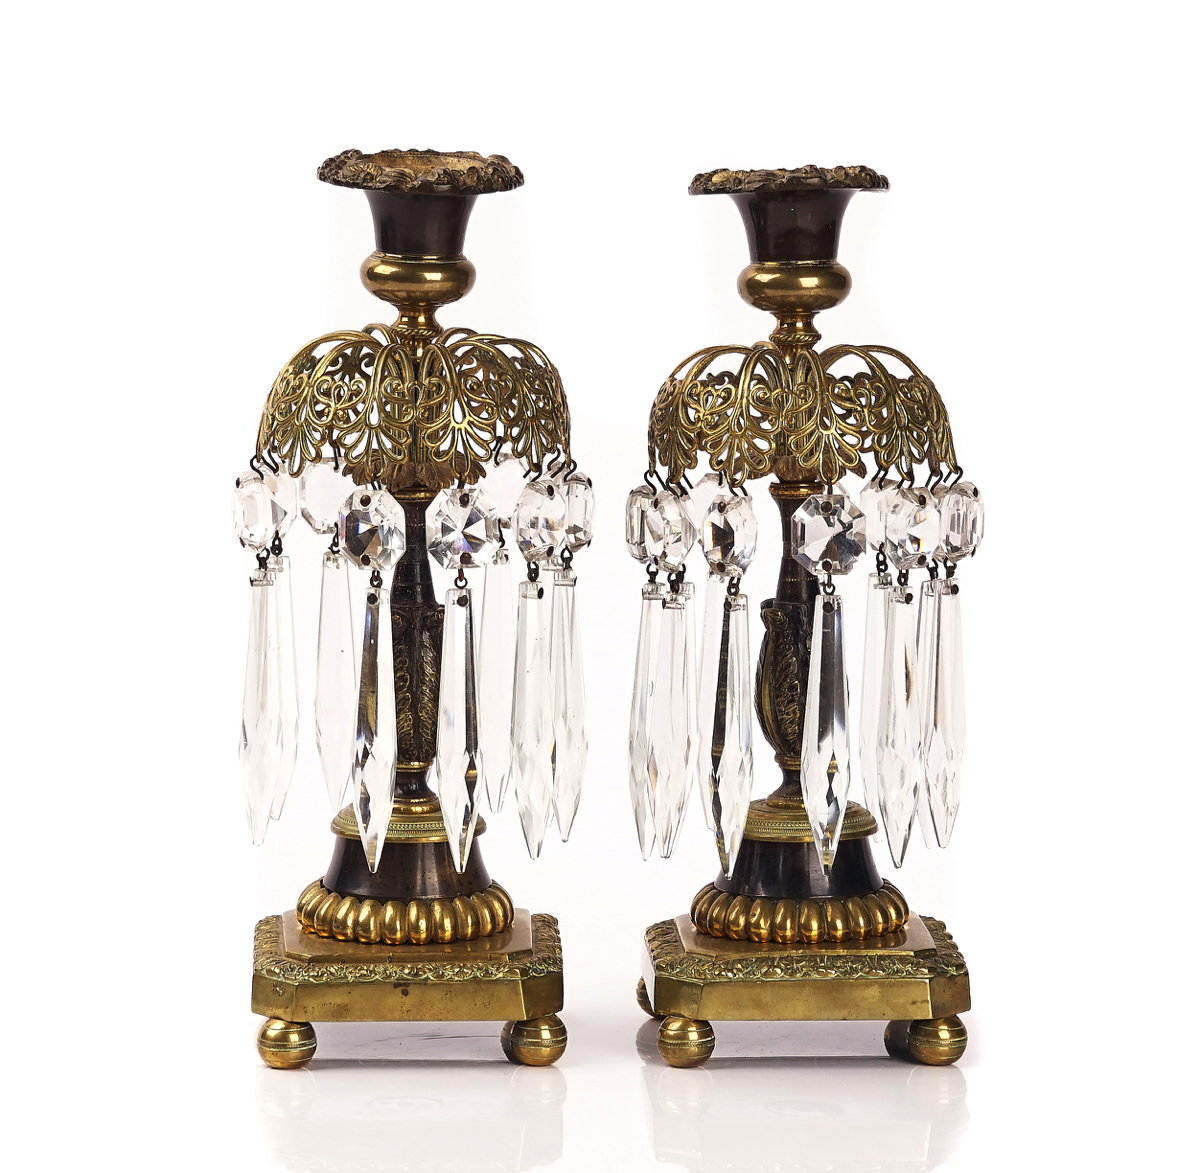 A PAIR OF REGENCY BRASS AND BRONZE PATINATED LUSTRE CANDLESTICKS (2)